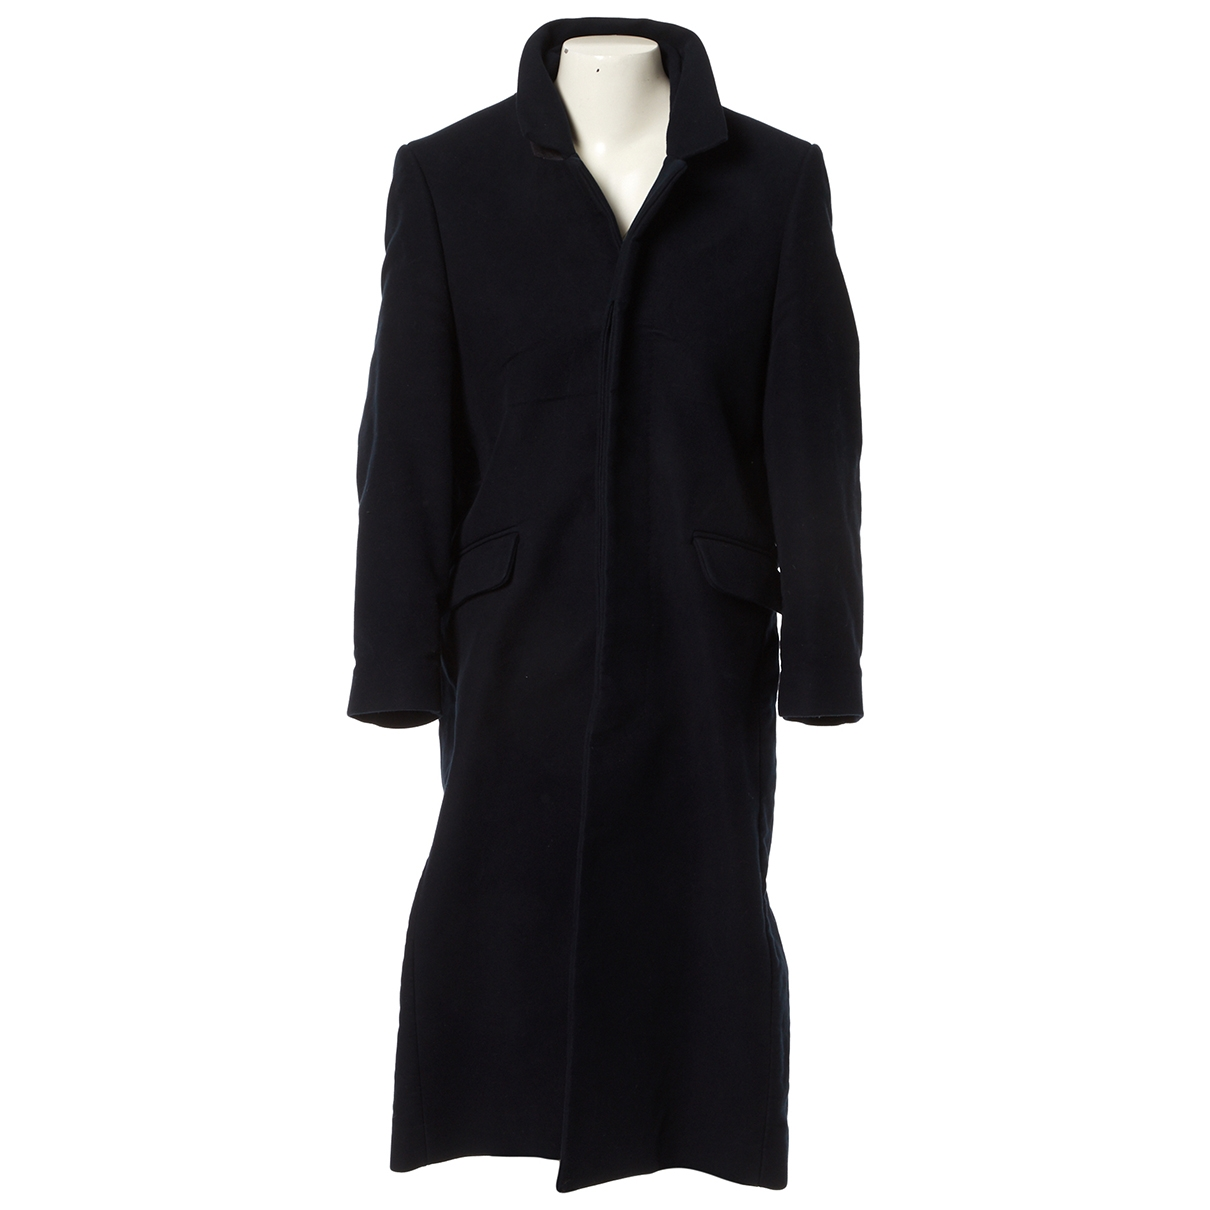 Vetements \N Black Cotton coat for Women M International